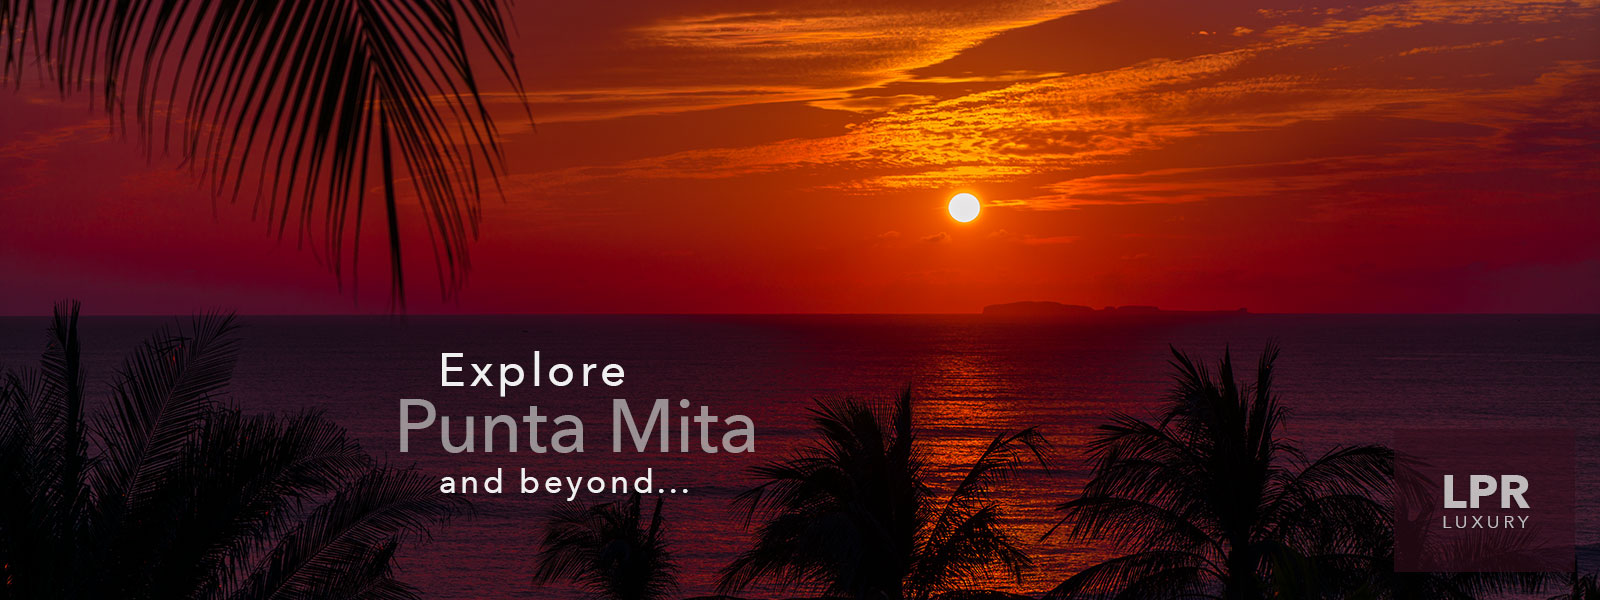 Explore the Punta Mita Resort and beyond with LPR Luxury International - The Punta Mita Luxury Real Estate Experts